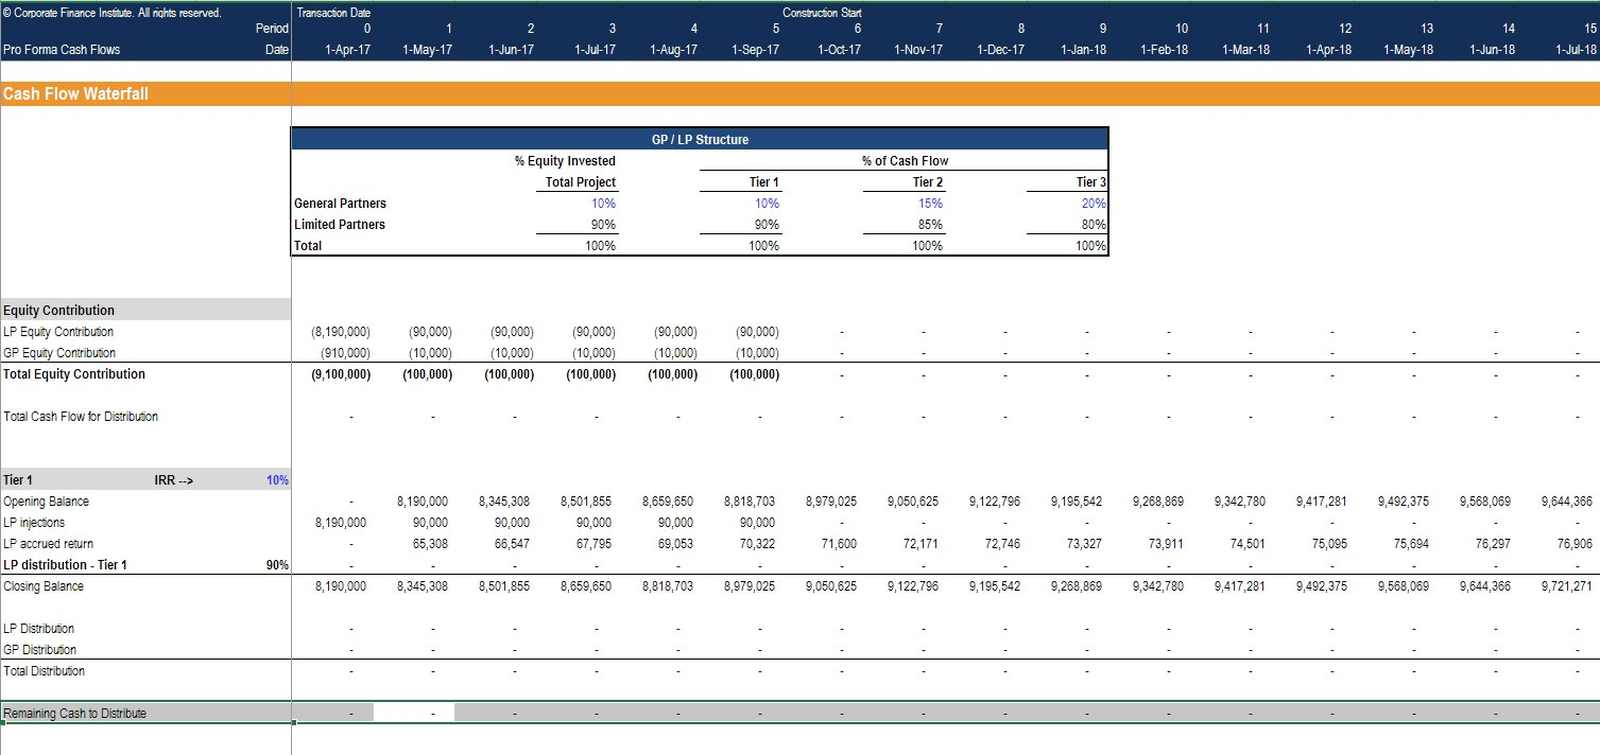 REFM cash flow waterfall